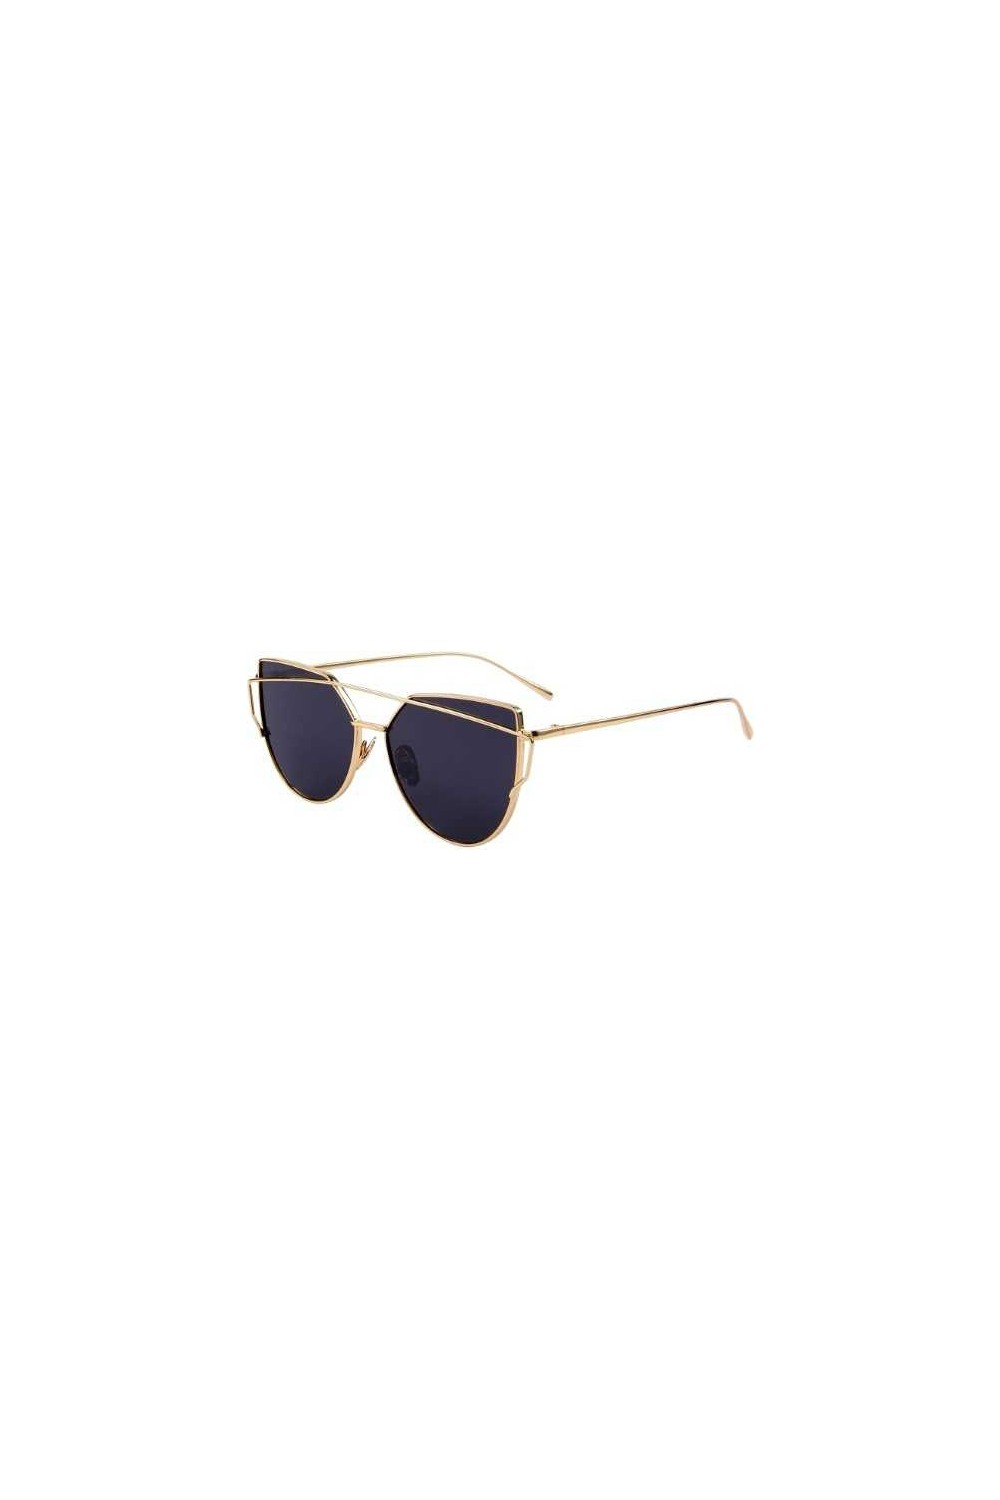 Hane14 Women's Sunglasses